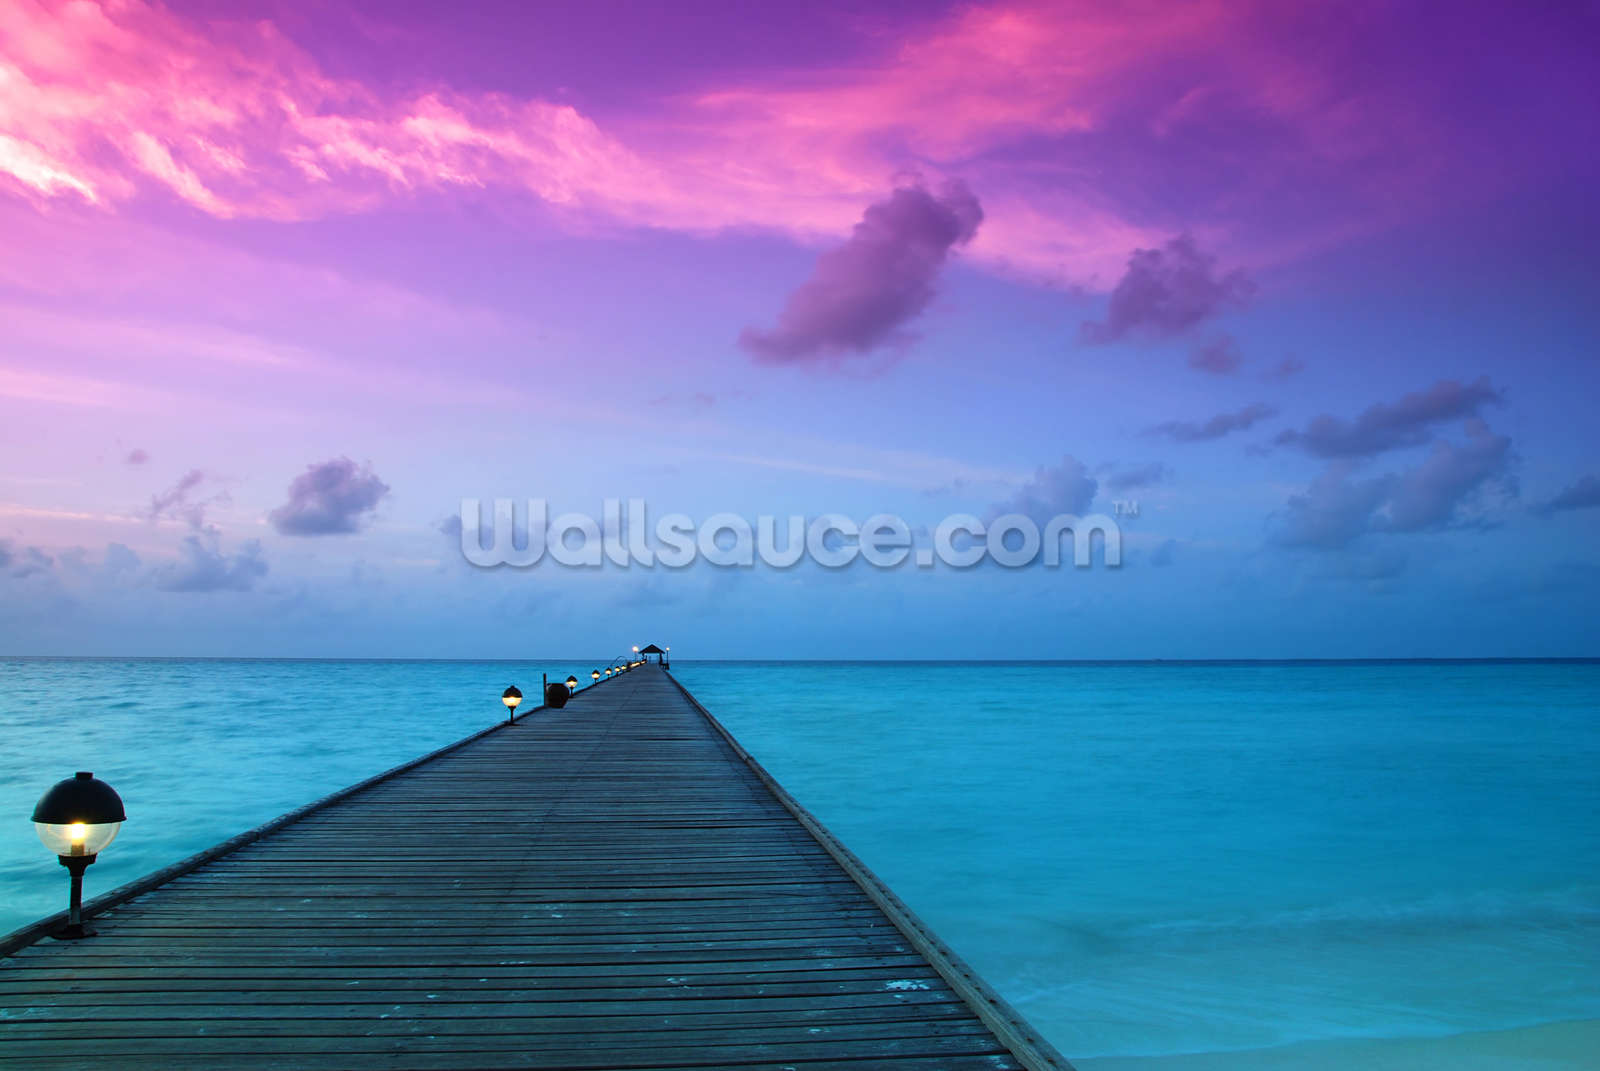 sunset in the maldives wall mural sunset in the maldives sunset wall mural wallpaper pictures to pin on pinterest